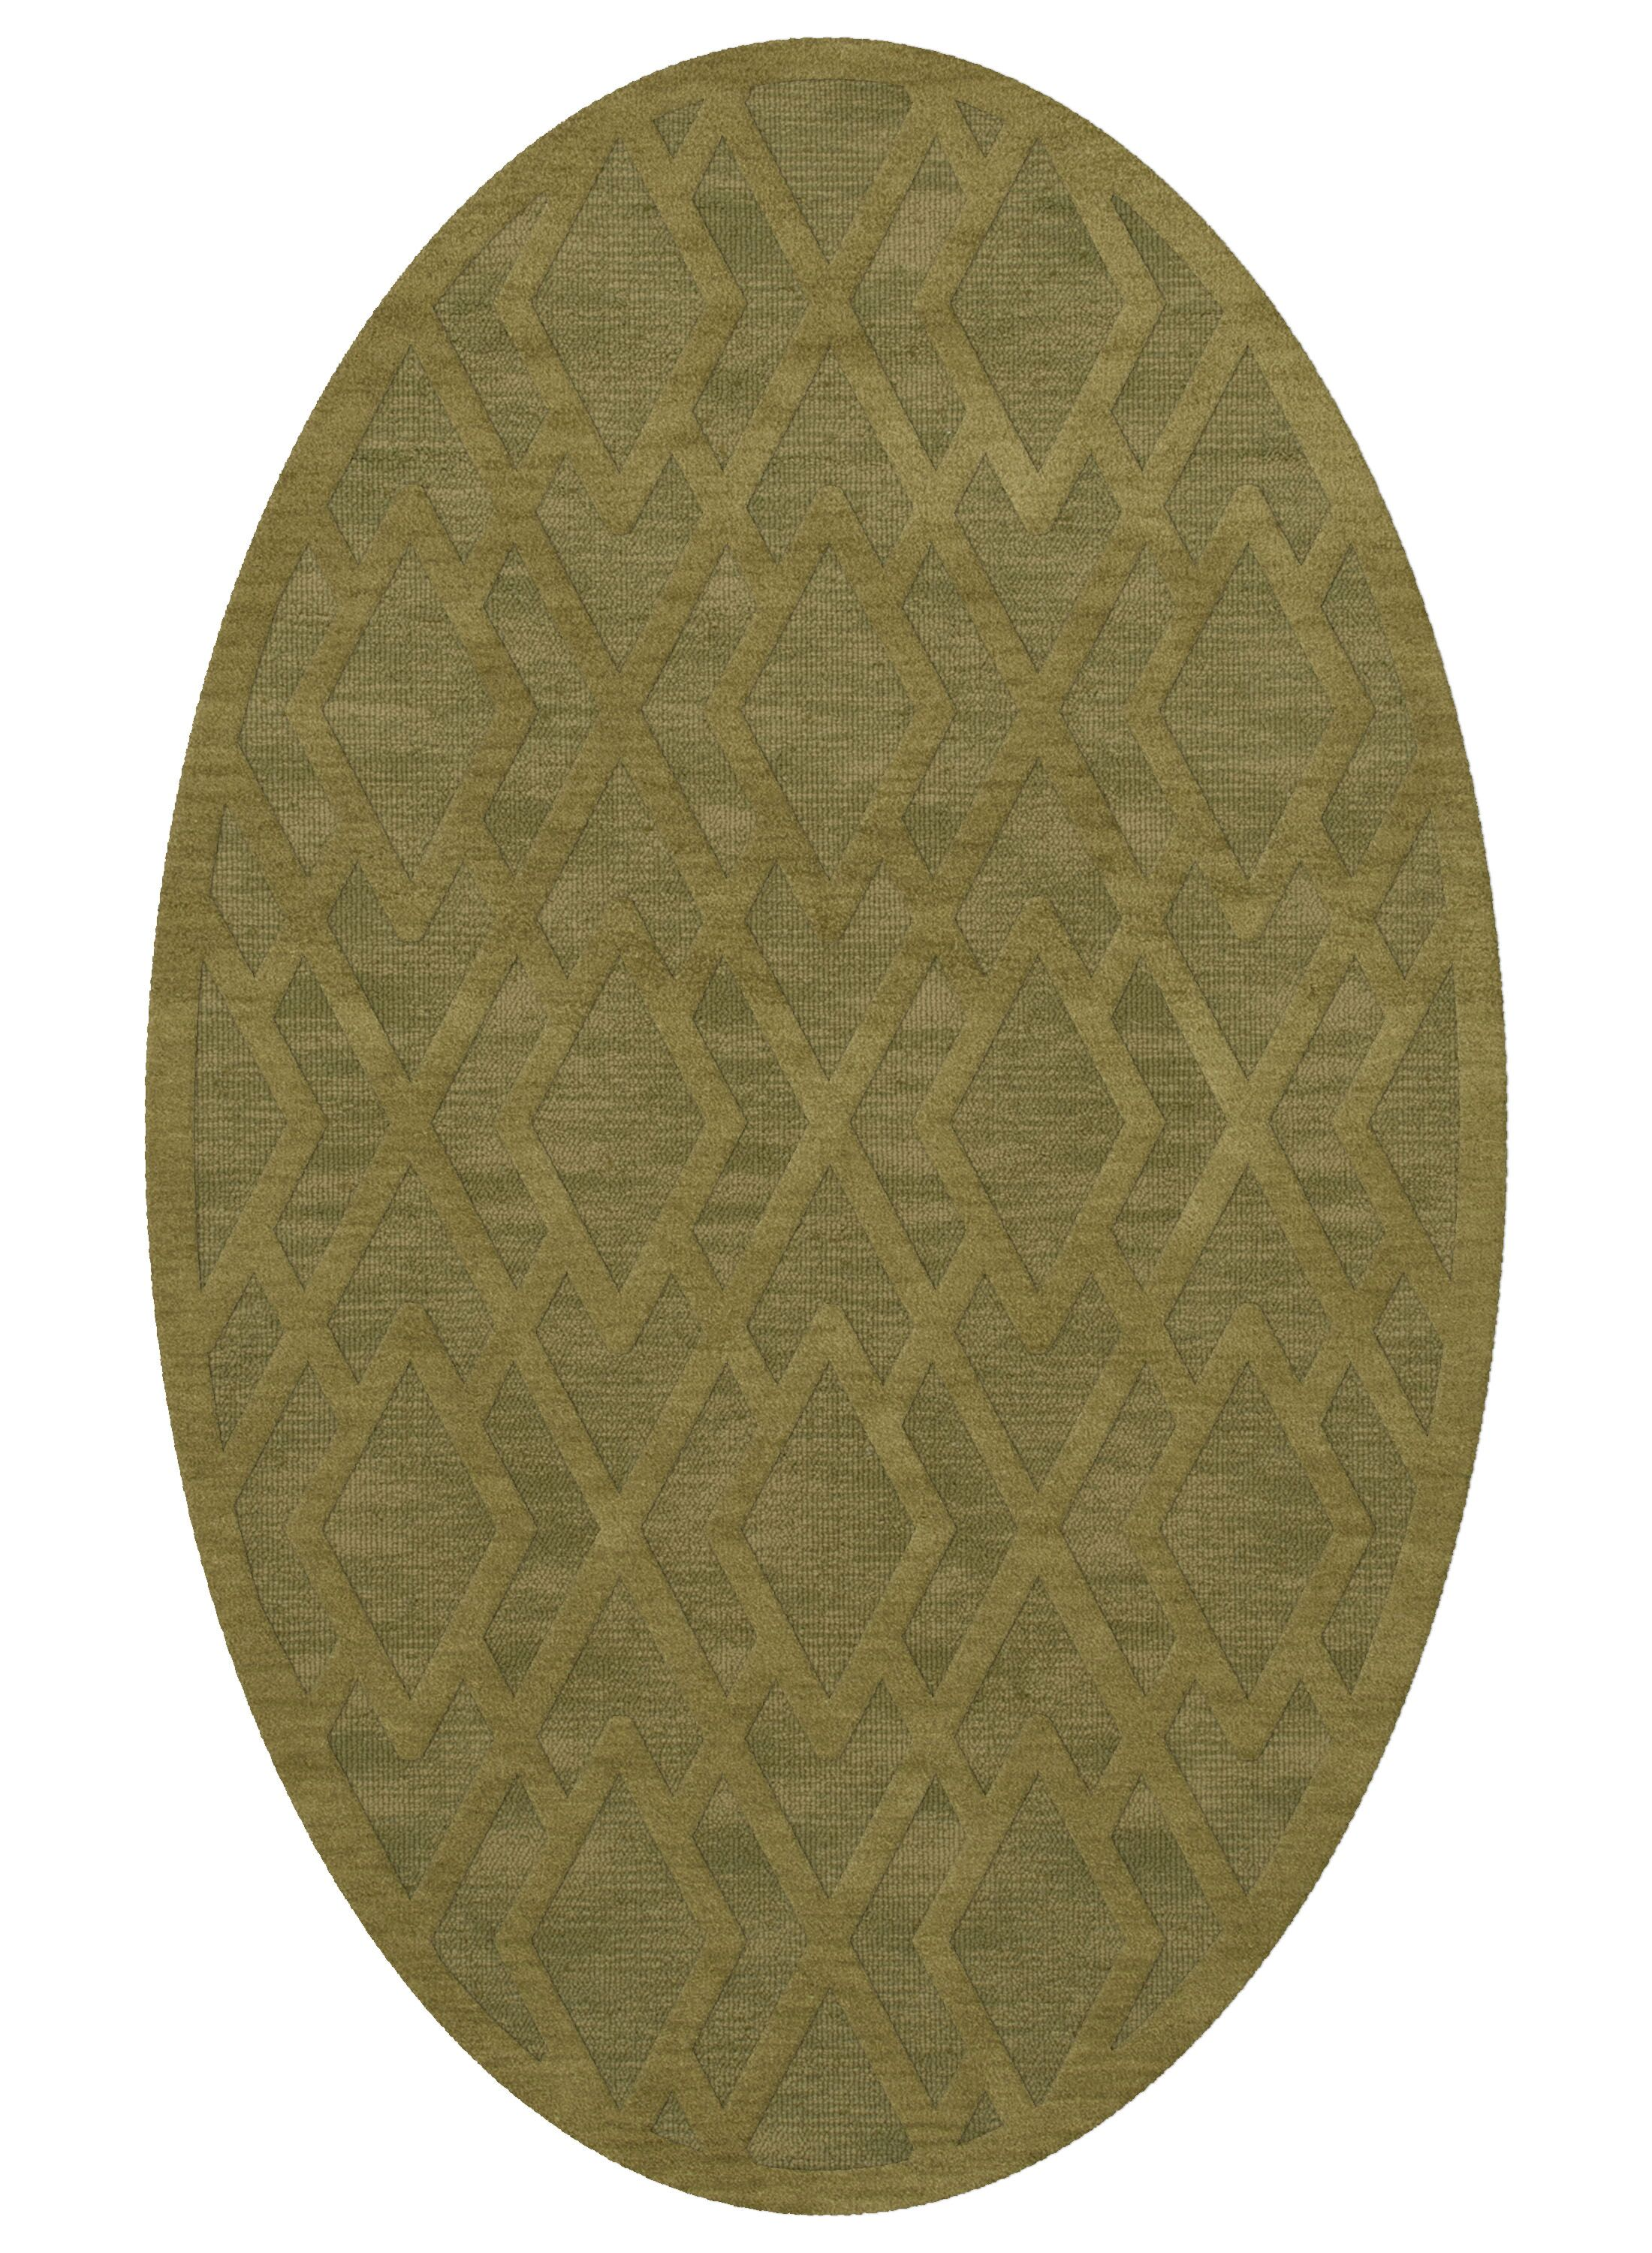 Dover Tufted Wool Pear Area Rug Rug Size: Oval 10' x 14'